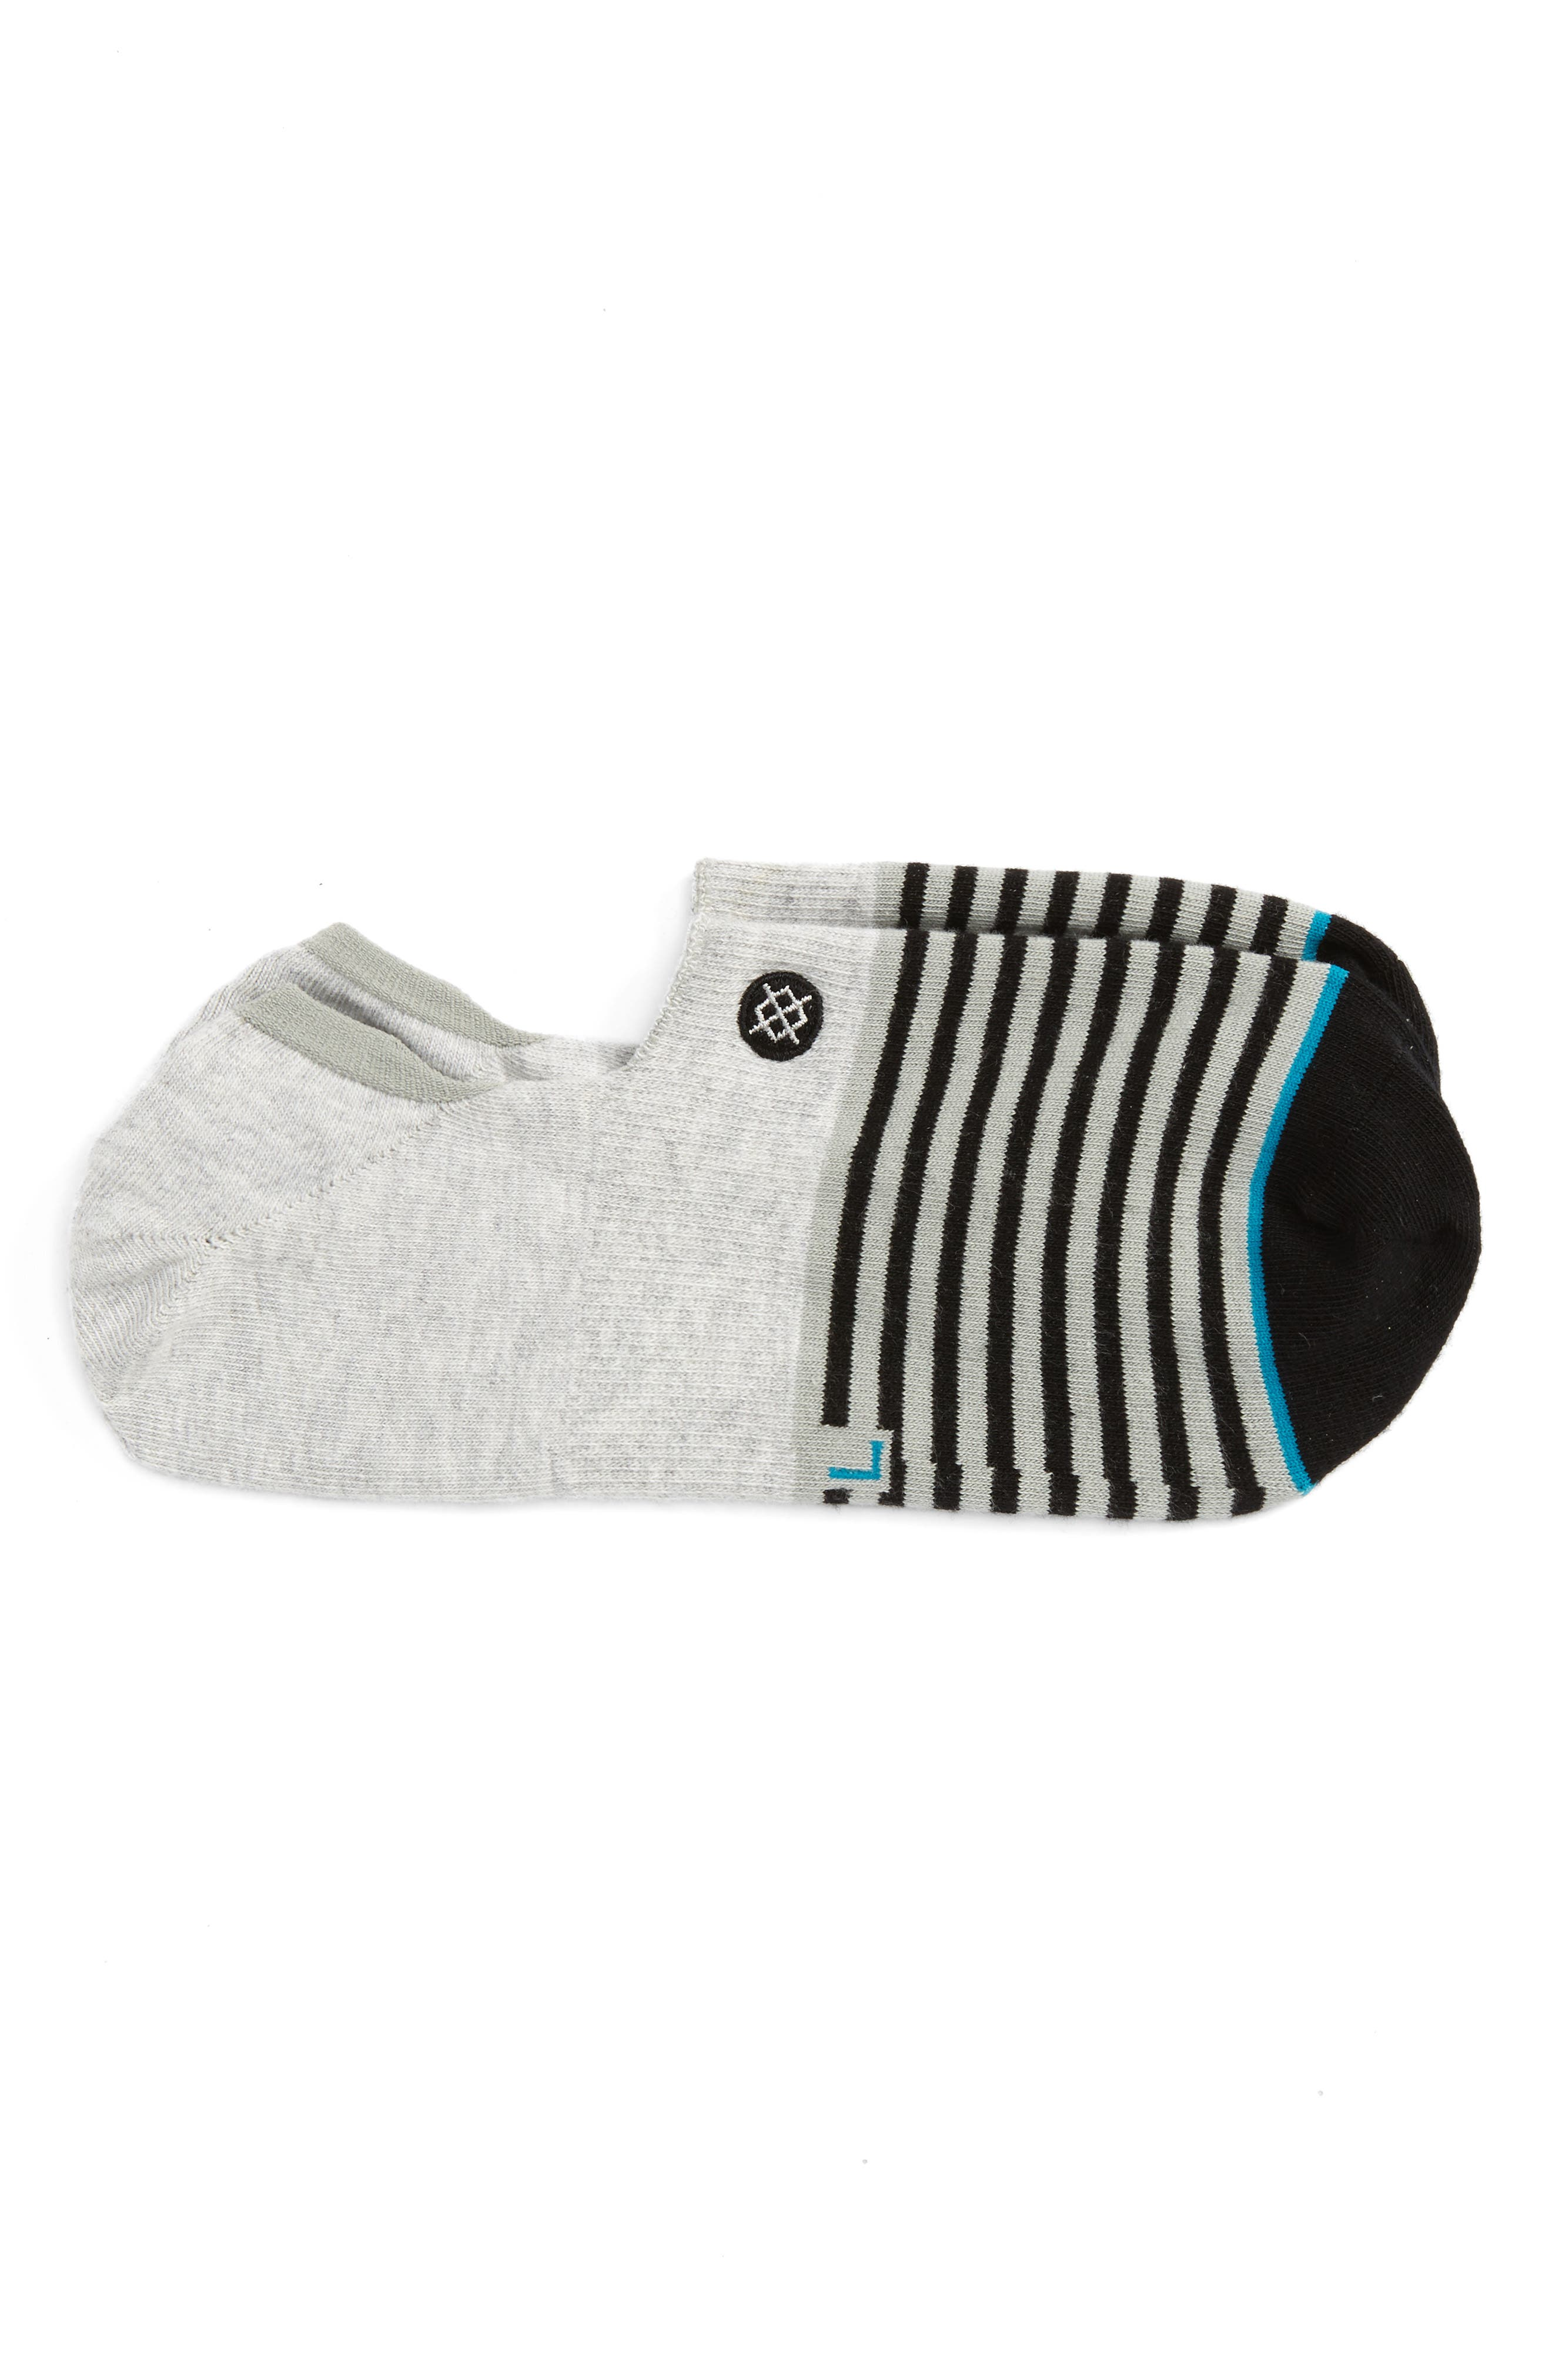 Stance Nagano Striped No-Show Socks